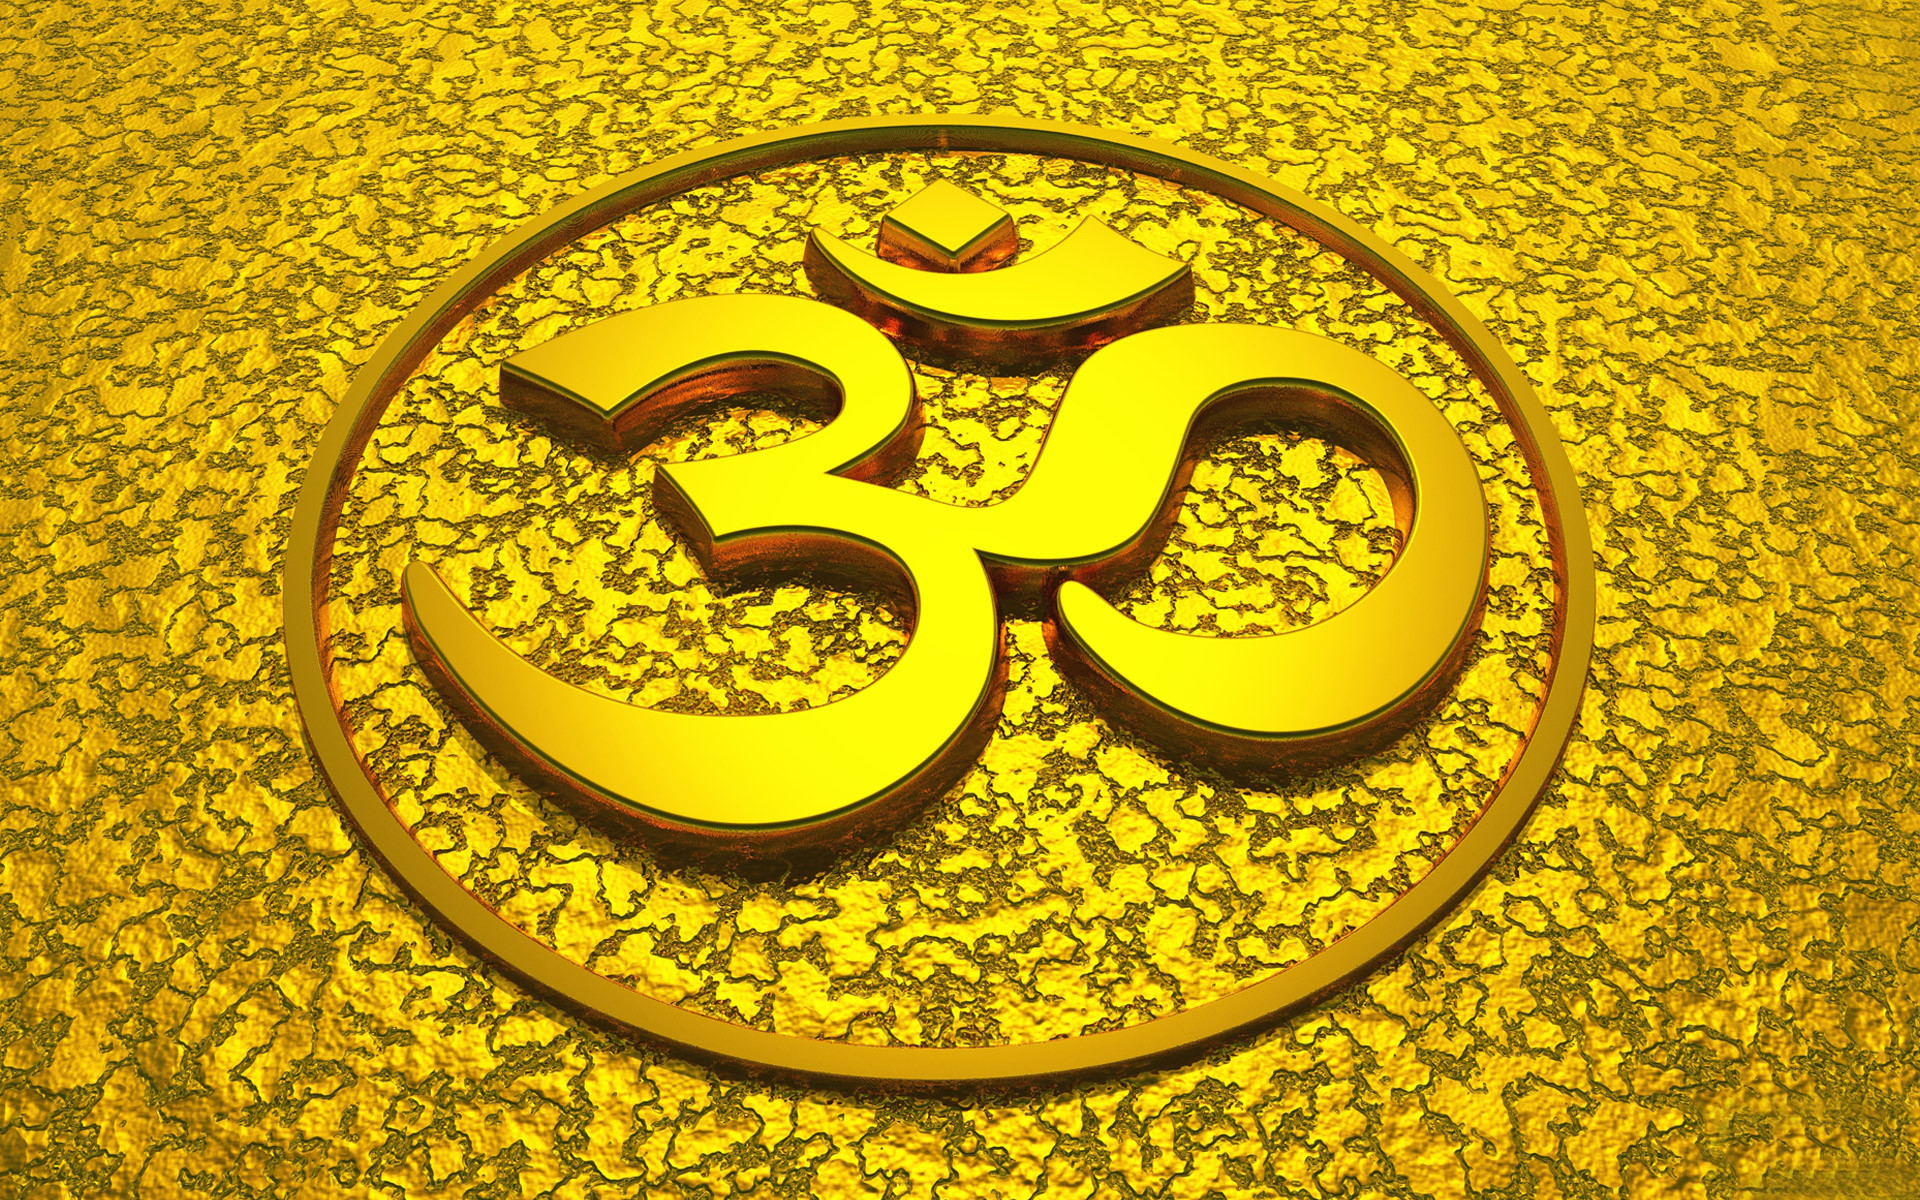 1920x1200 Sacred Hindu symbol made up of ancient Sanskrit letters...pronounced aum or  om